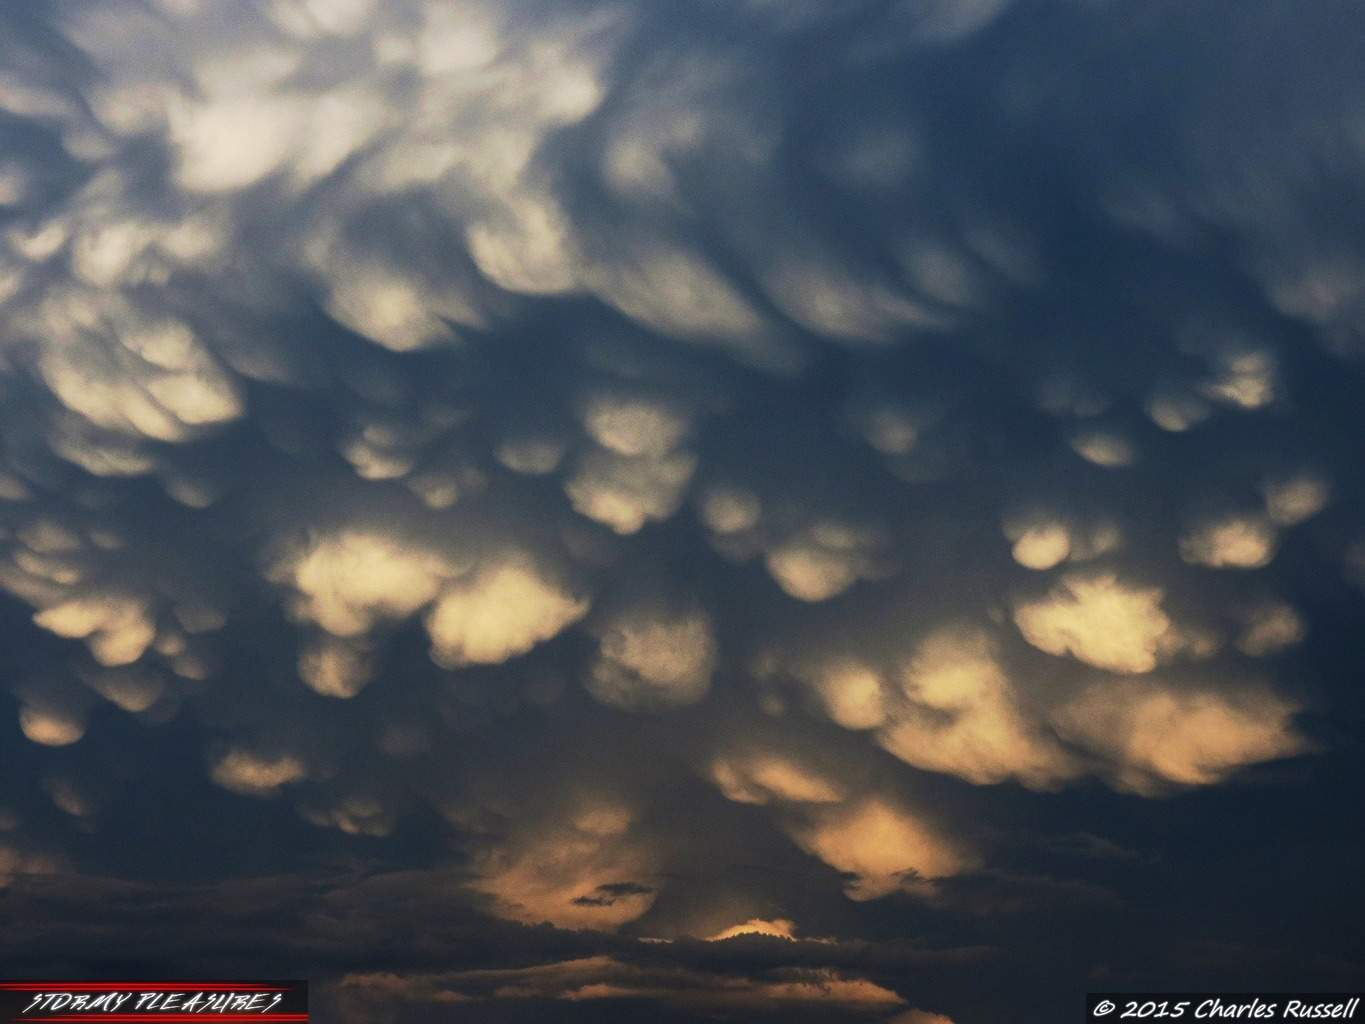 After the severe storms on 8/14/15 I was treated to one of the most amazing Mammatus displays I have ever seen in Michigan! The sky was just full of them. As the sun began to dip low in the western sky, it illuminated these beauties as the storms moved SSE away from me. I shot this in Greenville, MI. Awesome chase day!